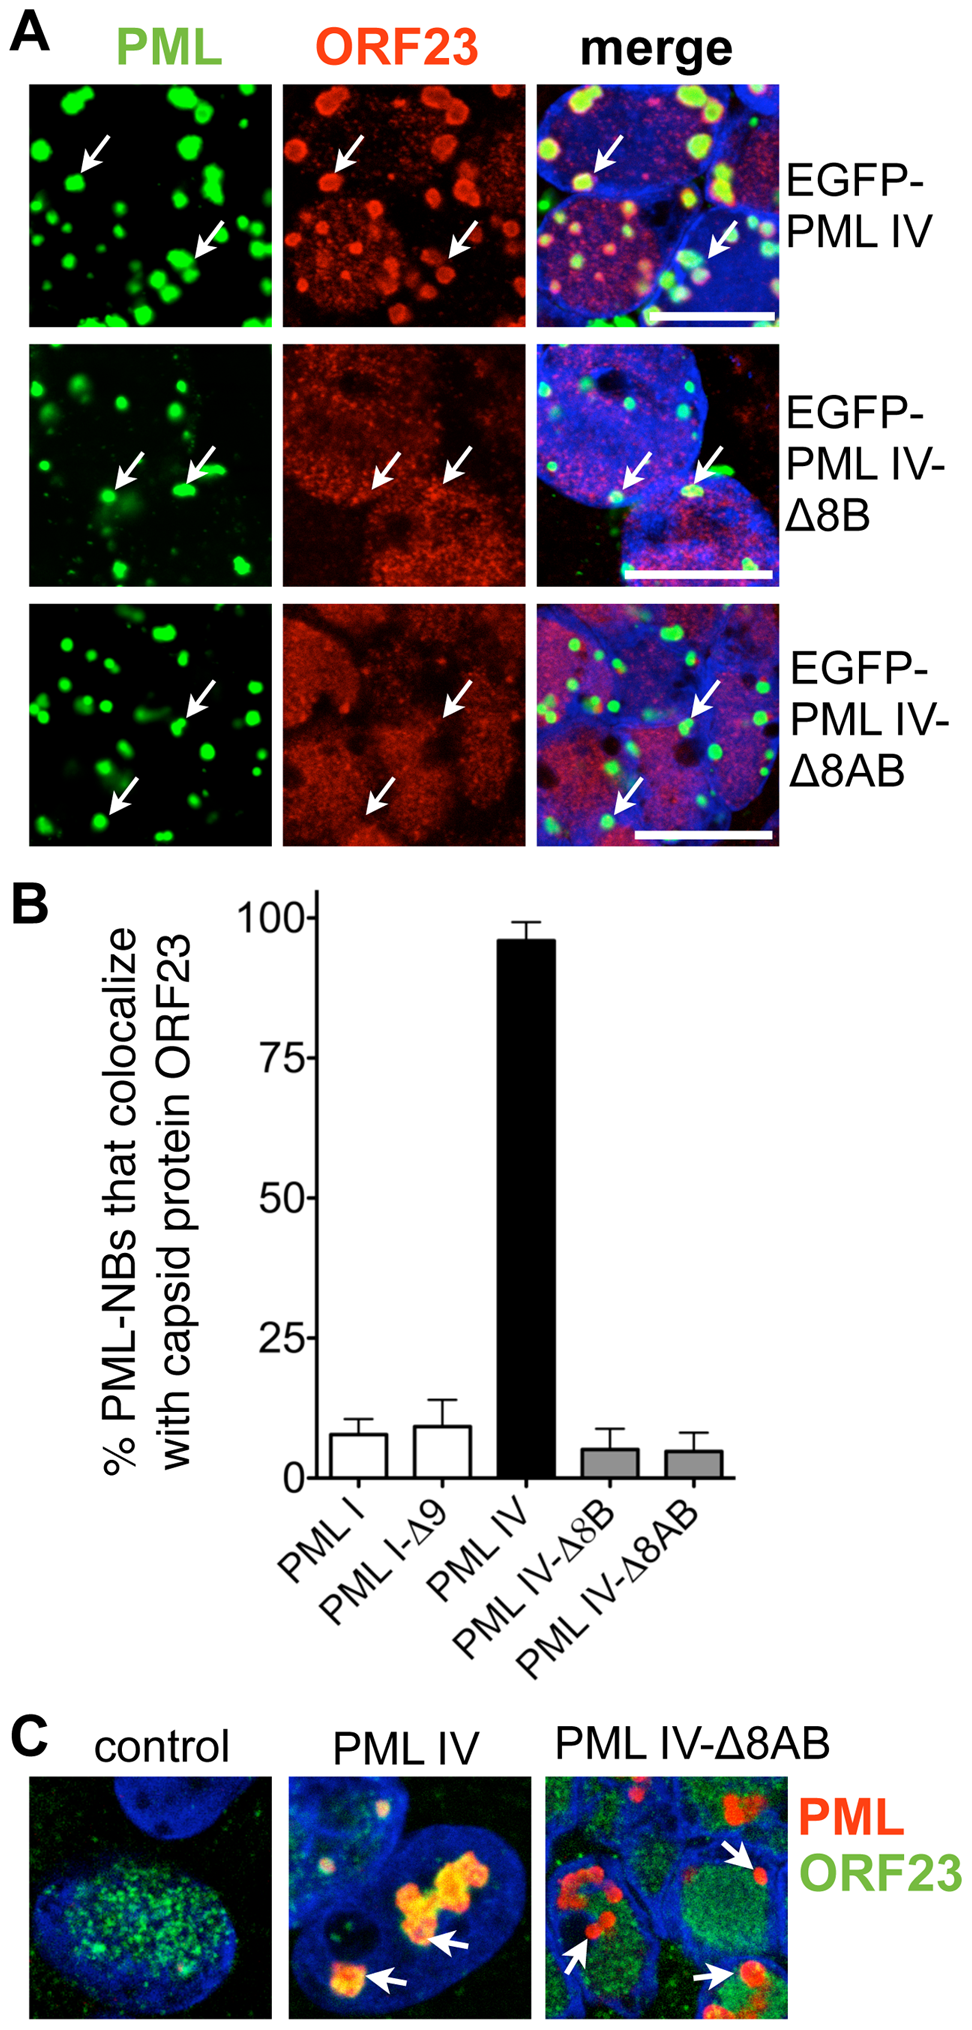 Sequestration of ORF23 capsid protein requires the C-terminal domain of PML IV.